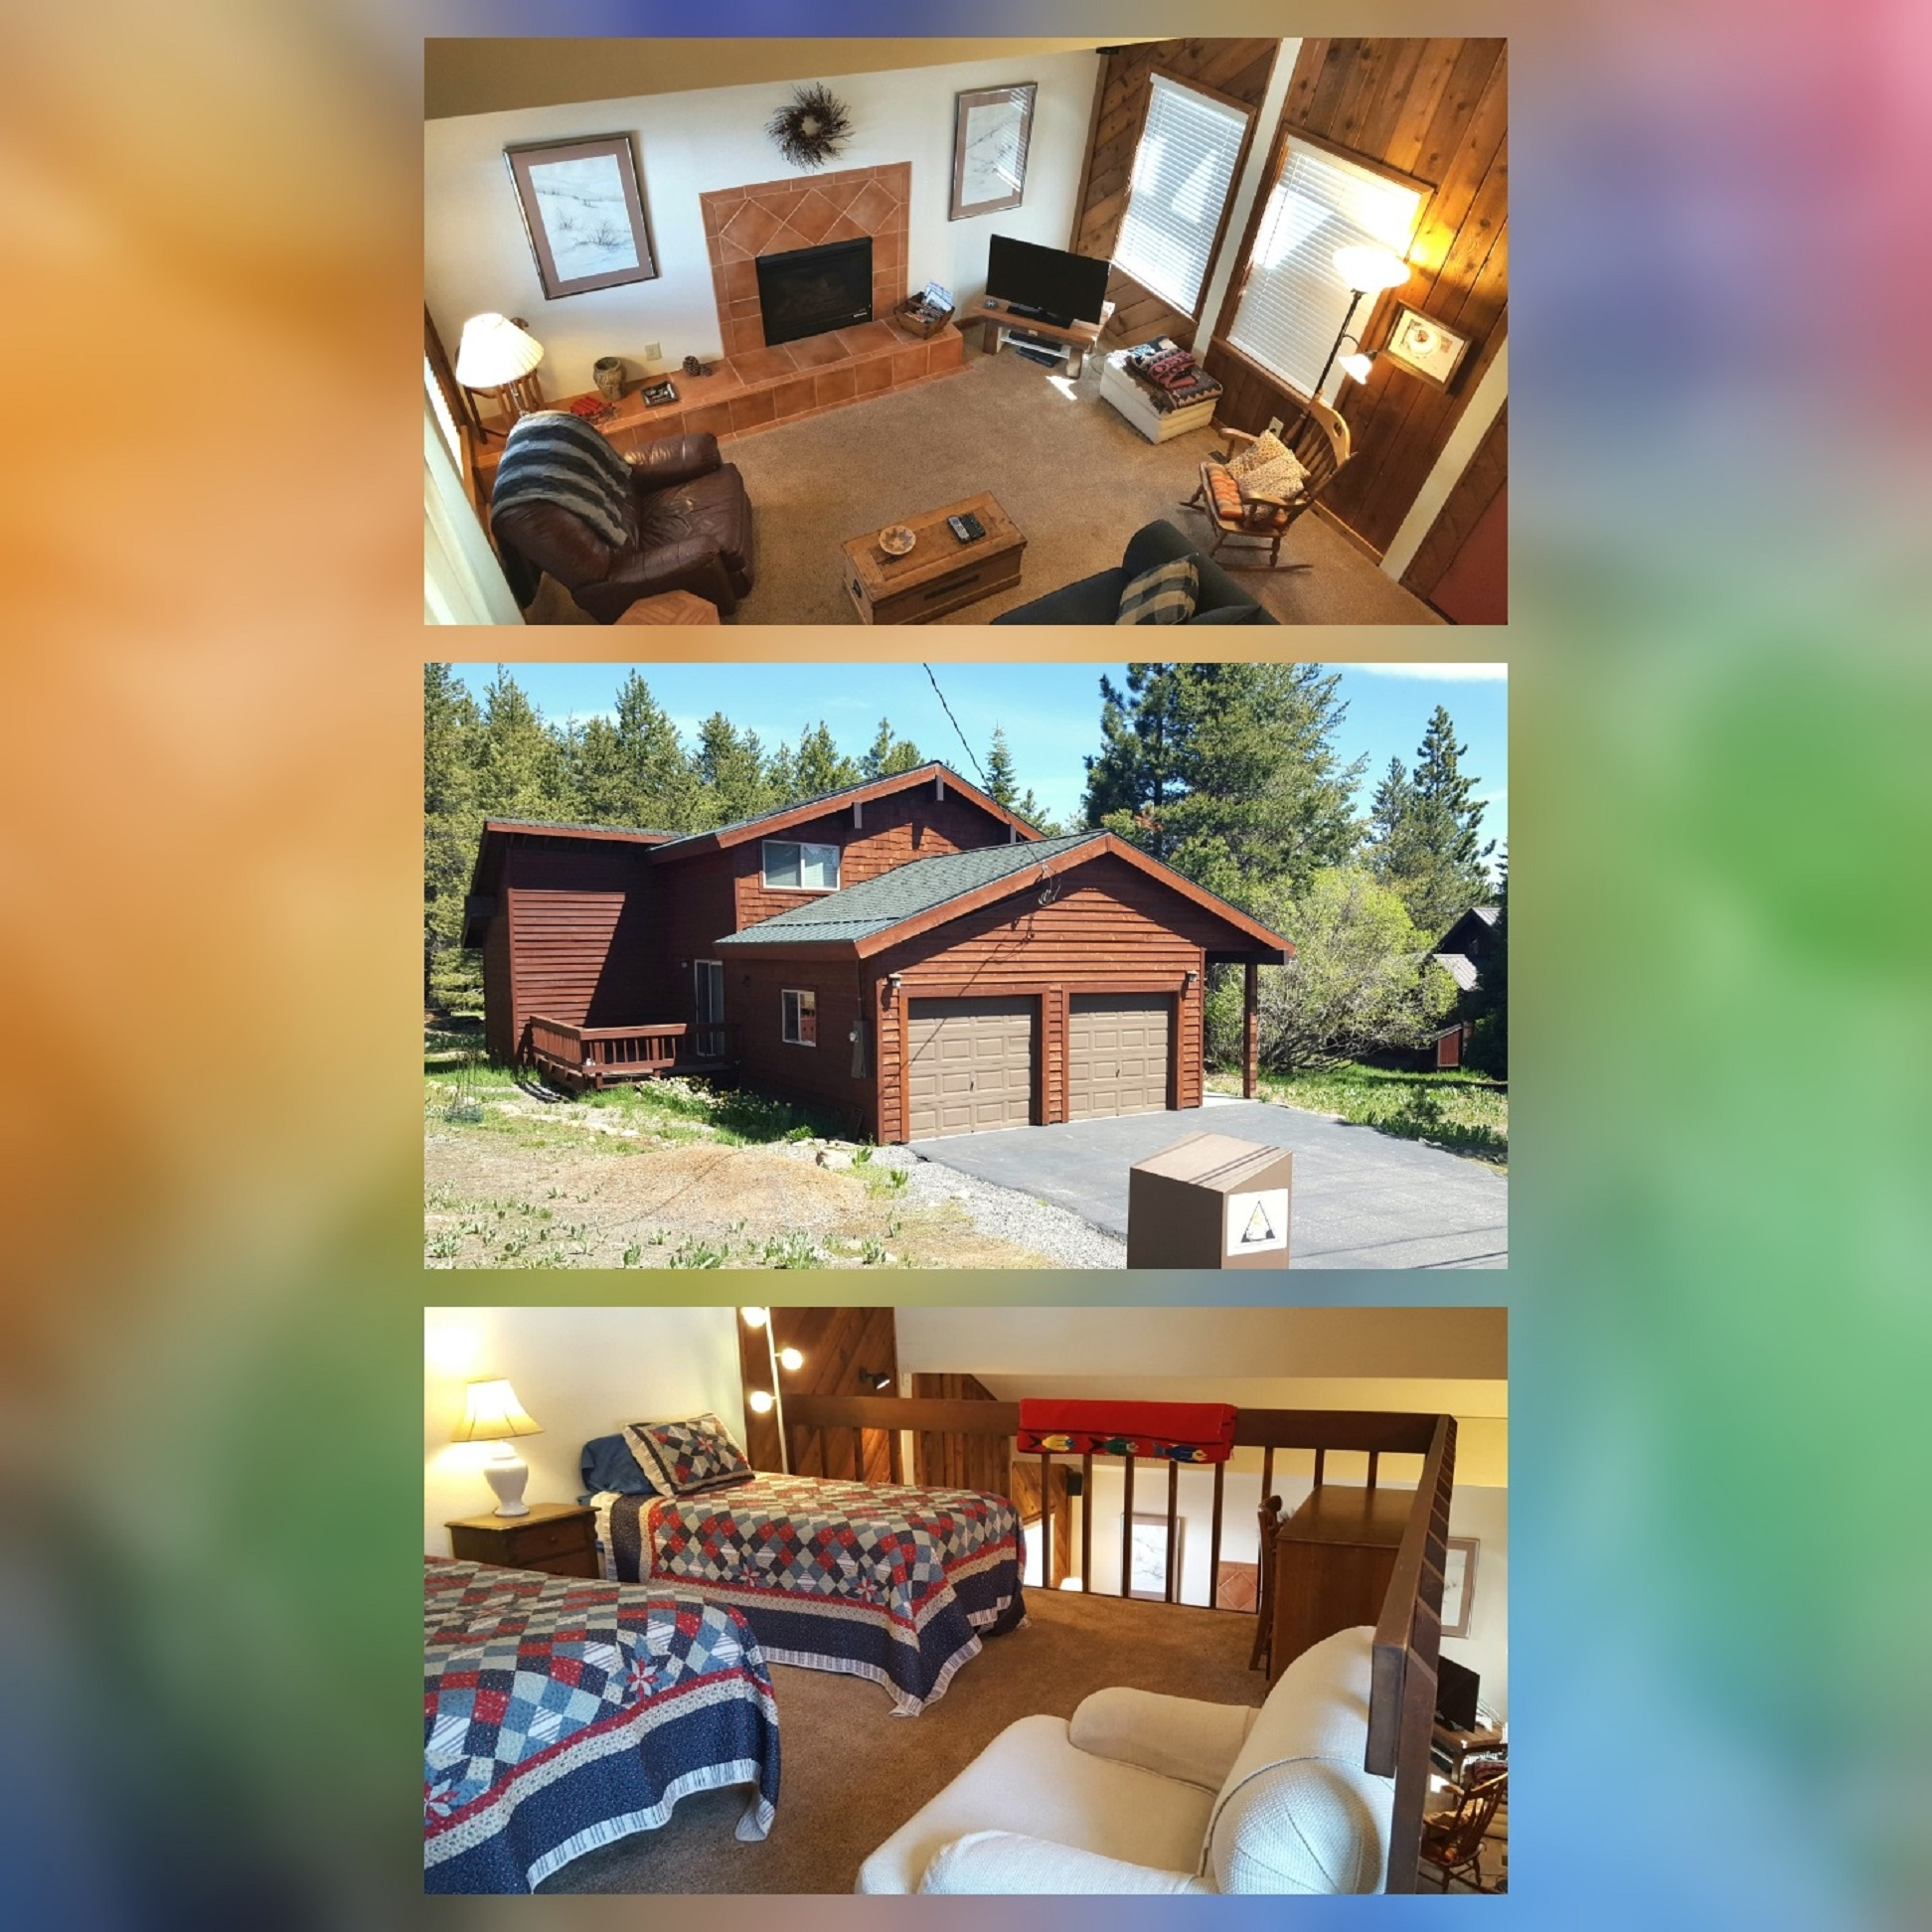 com cottages cottage this ca gallery truckee vacation image property hotel home us of booking the ponderosa